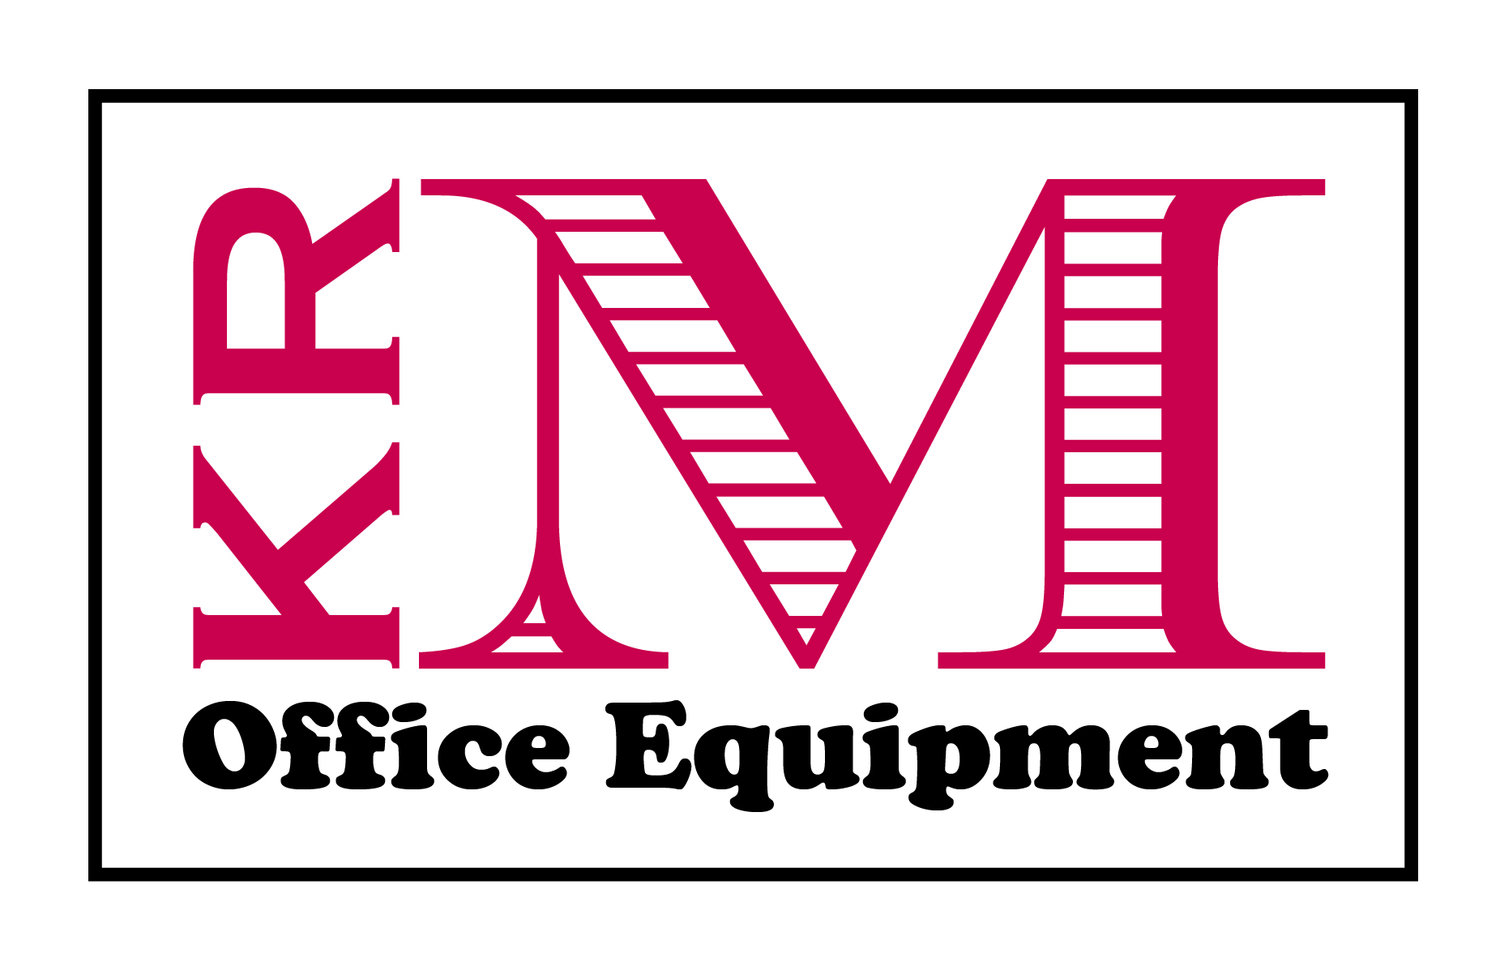 KRM Office Equipment